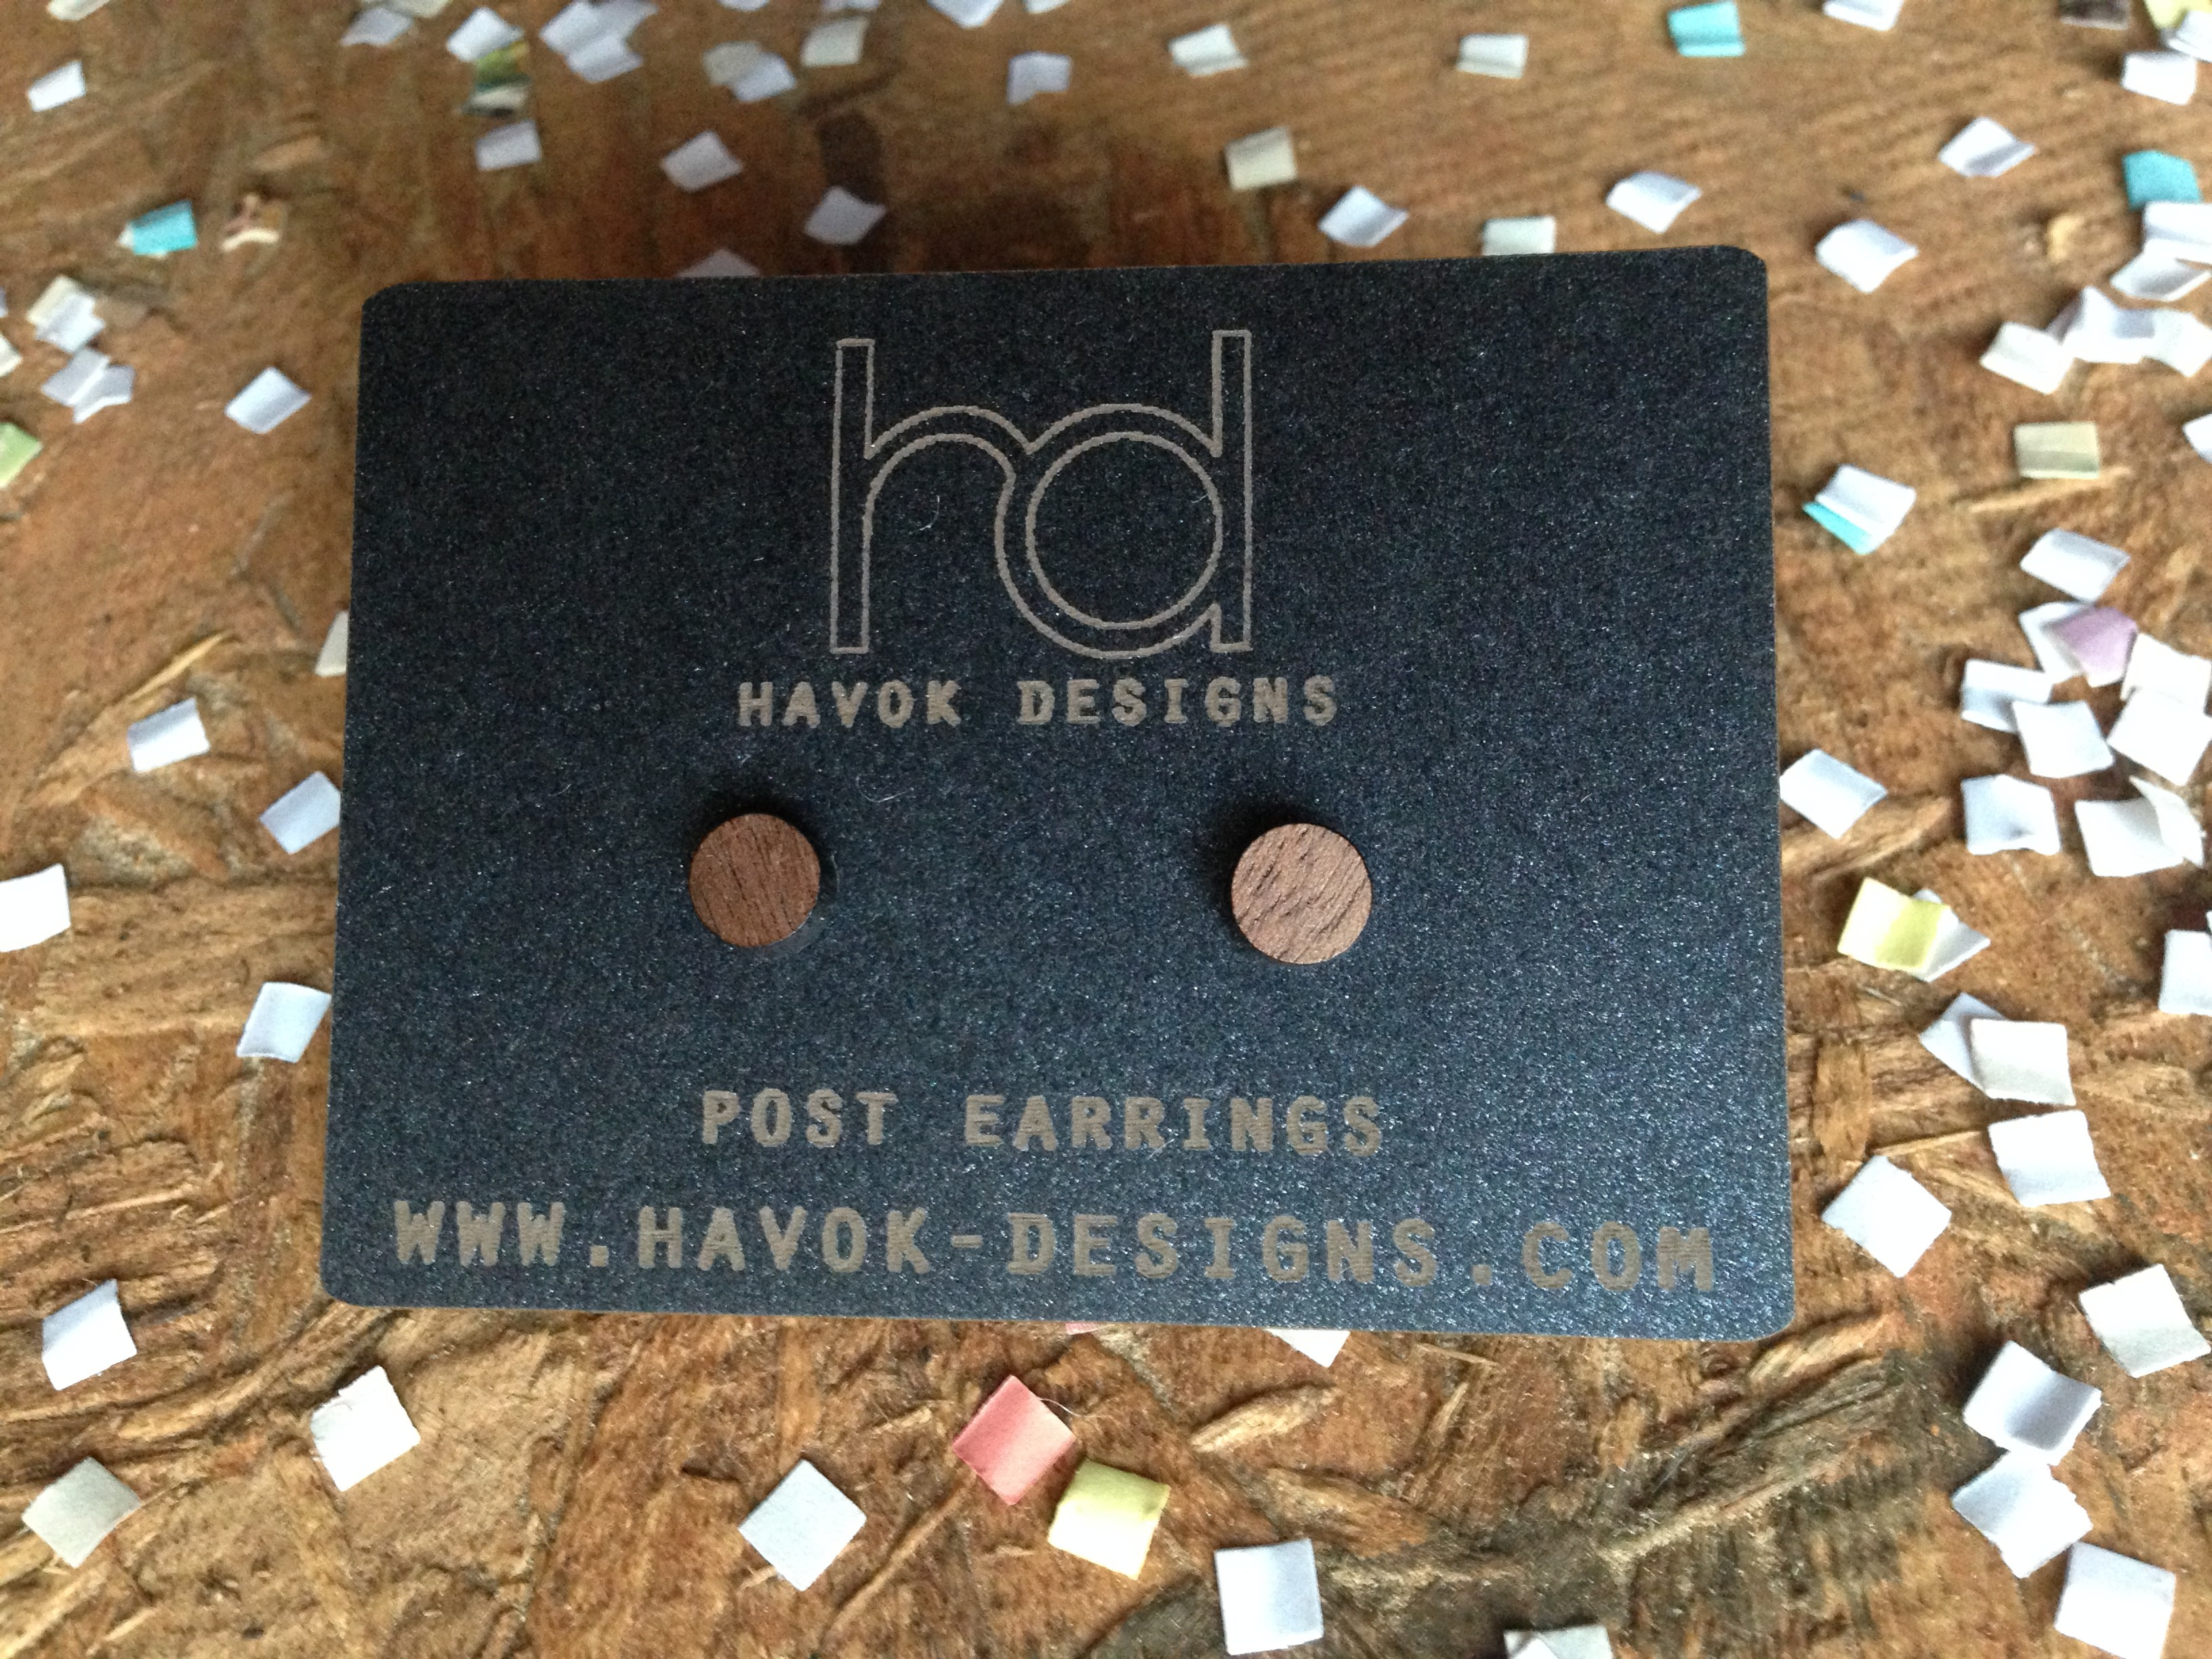 havok designs